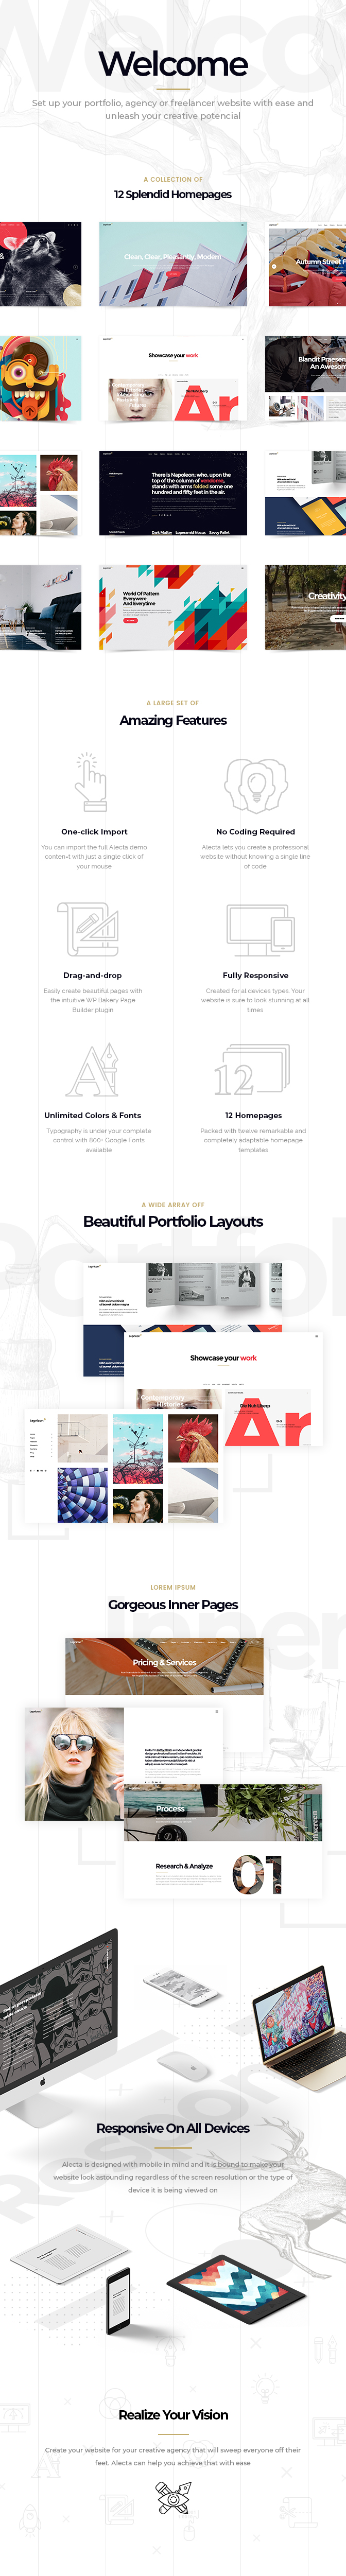 Alecta - Creative Agency Theme - 1